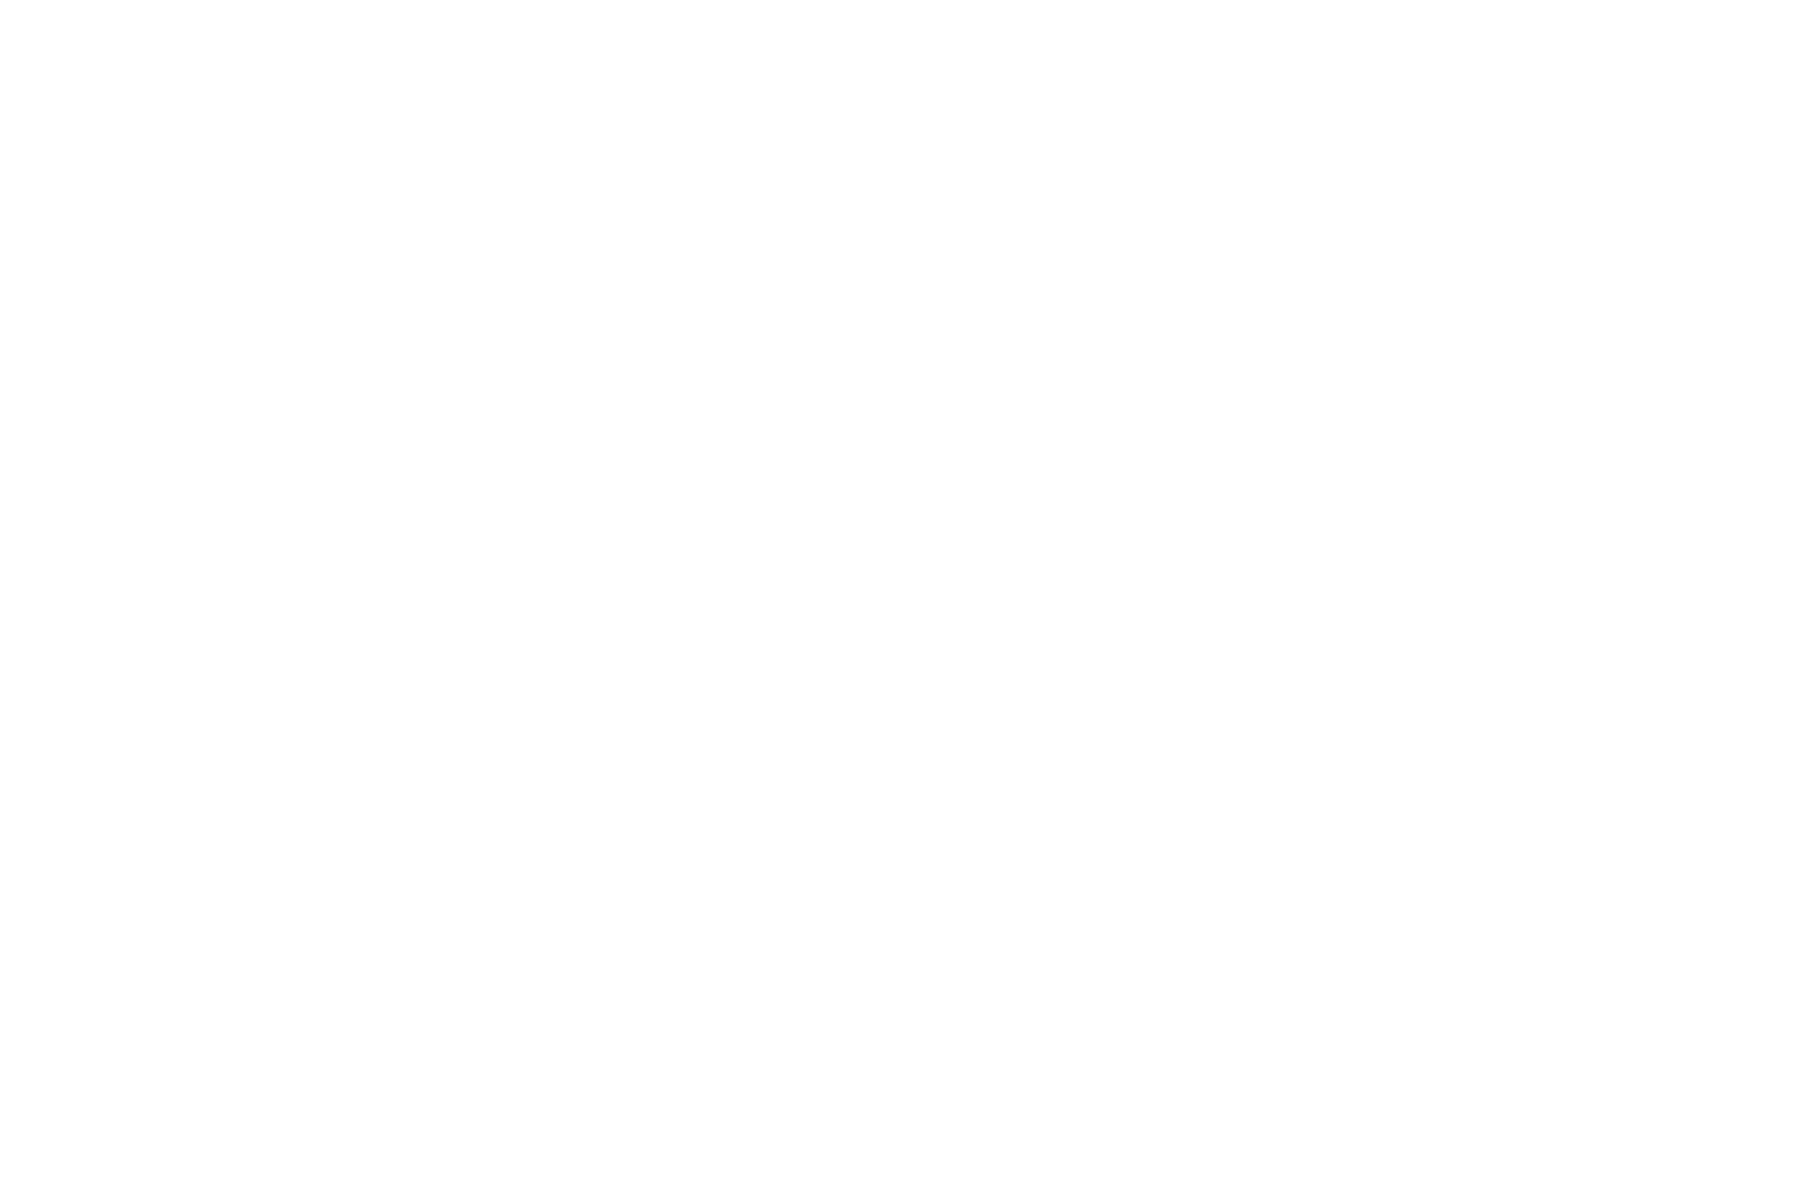 Health Promotion Agency resource store